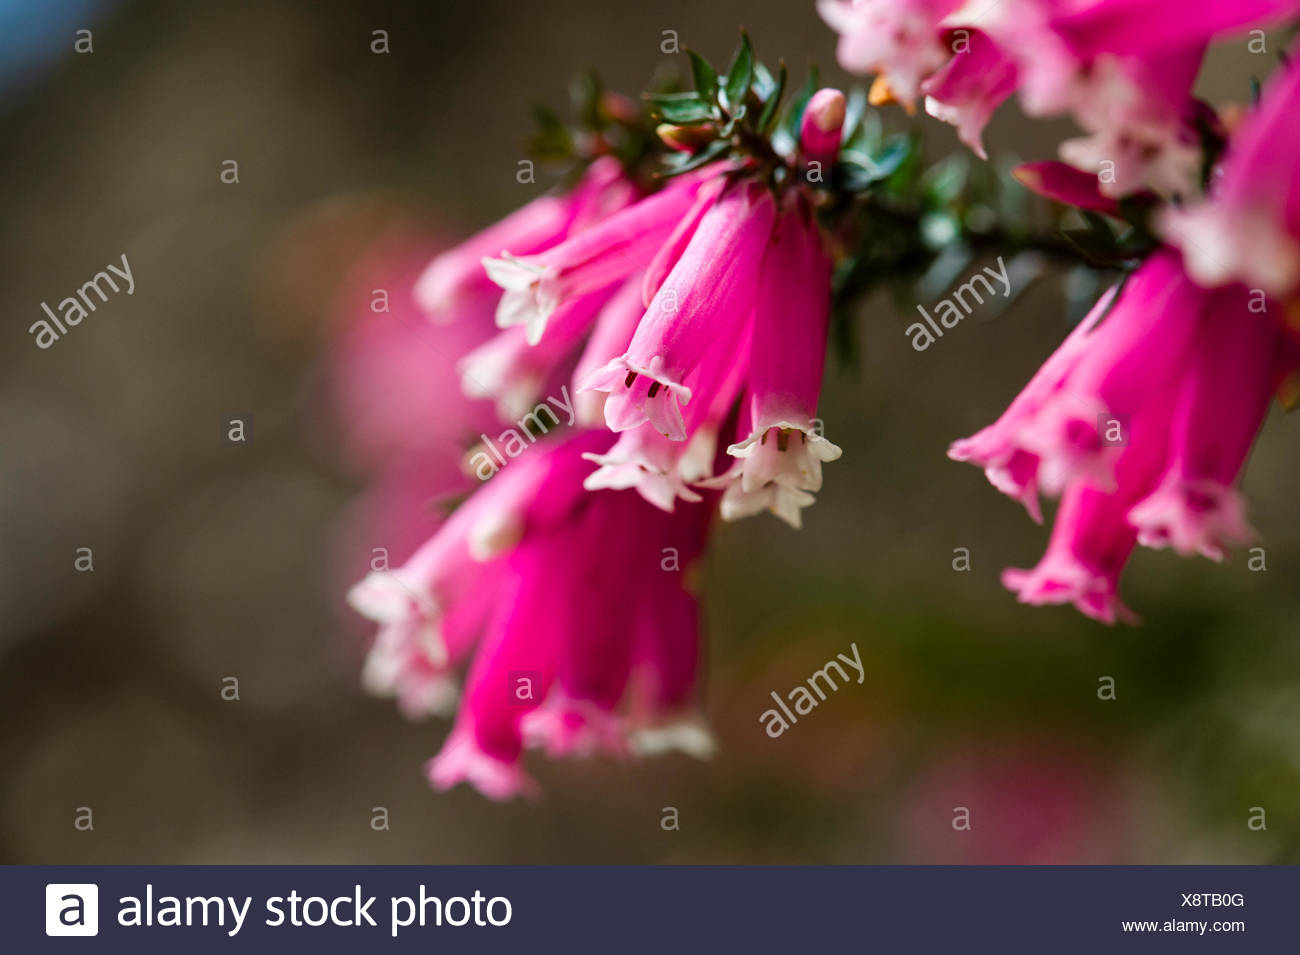 The Delicate Pink Petals Of A Fuchsia Heath Flower Stock Photo